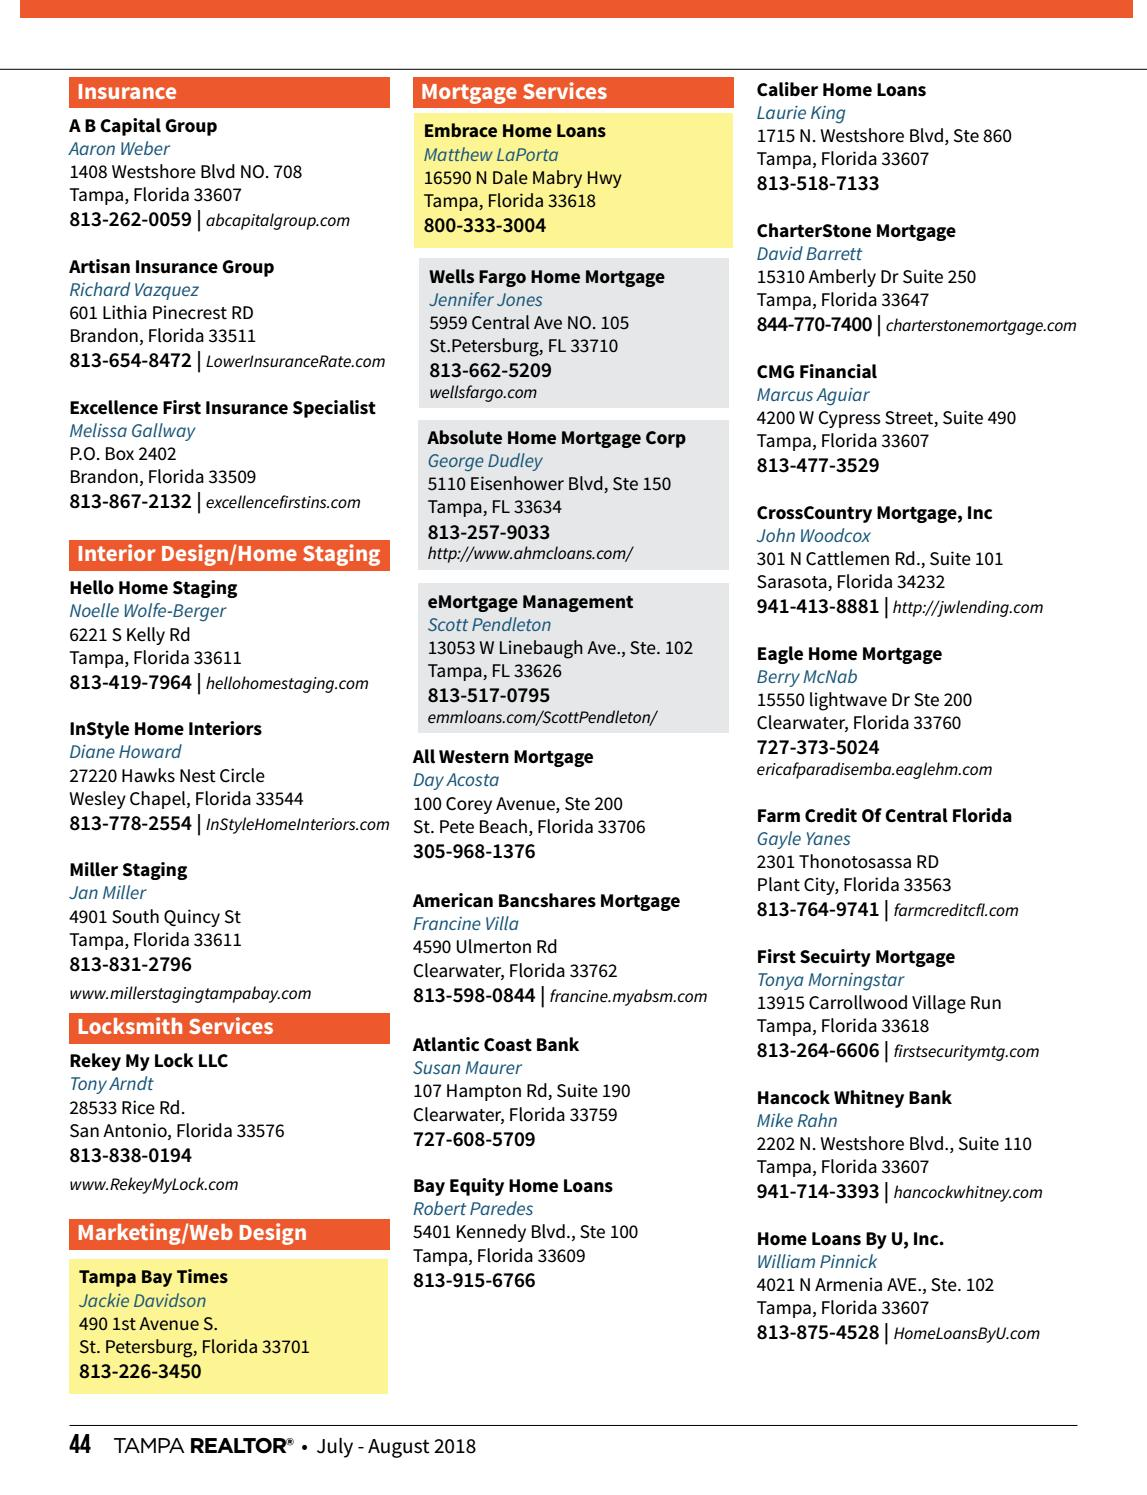 Tampa Realtor Magazine July August 2018 By Greater Tampa Realtors